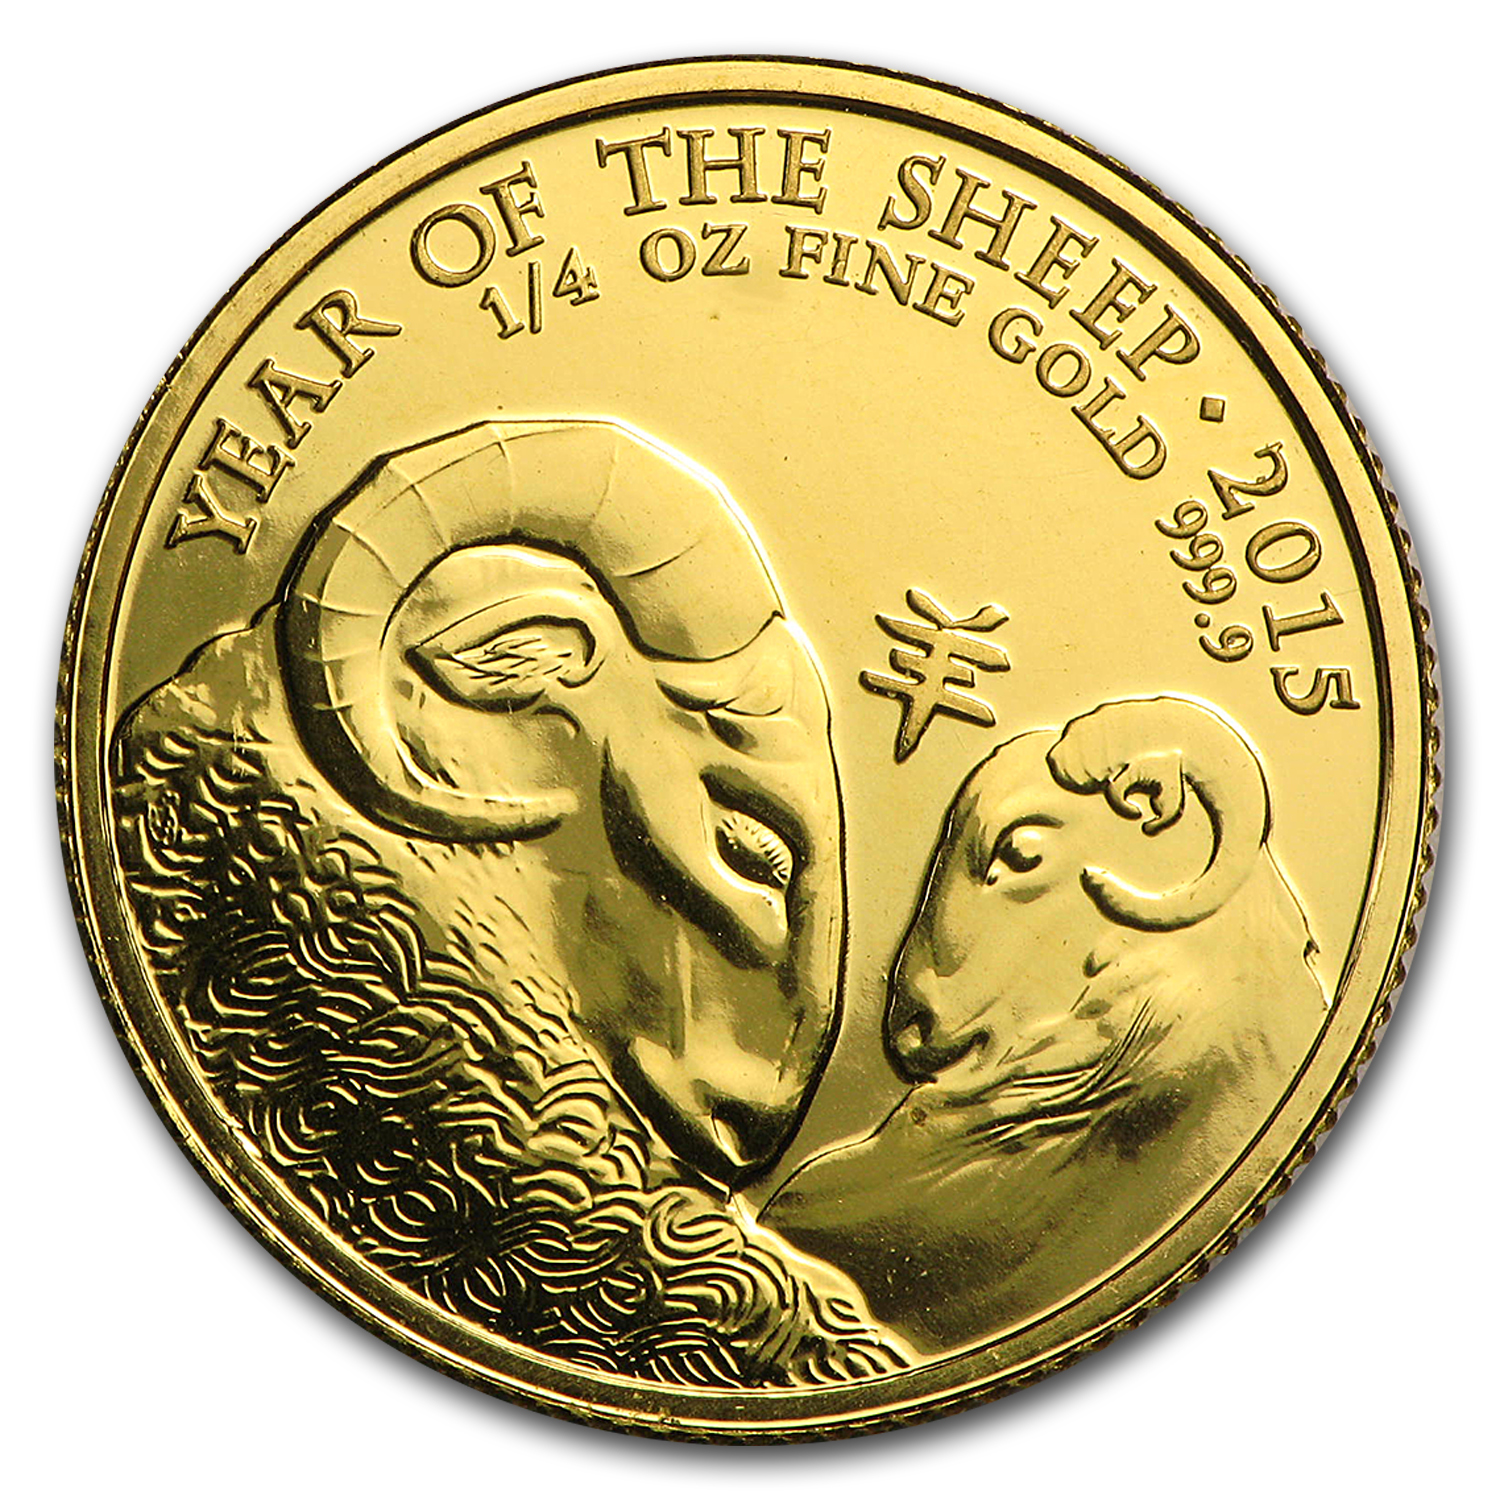 2015 Great Britain 1/4 oz Gold Year of the Sheep BU